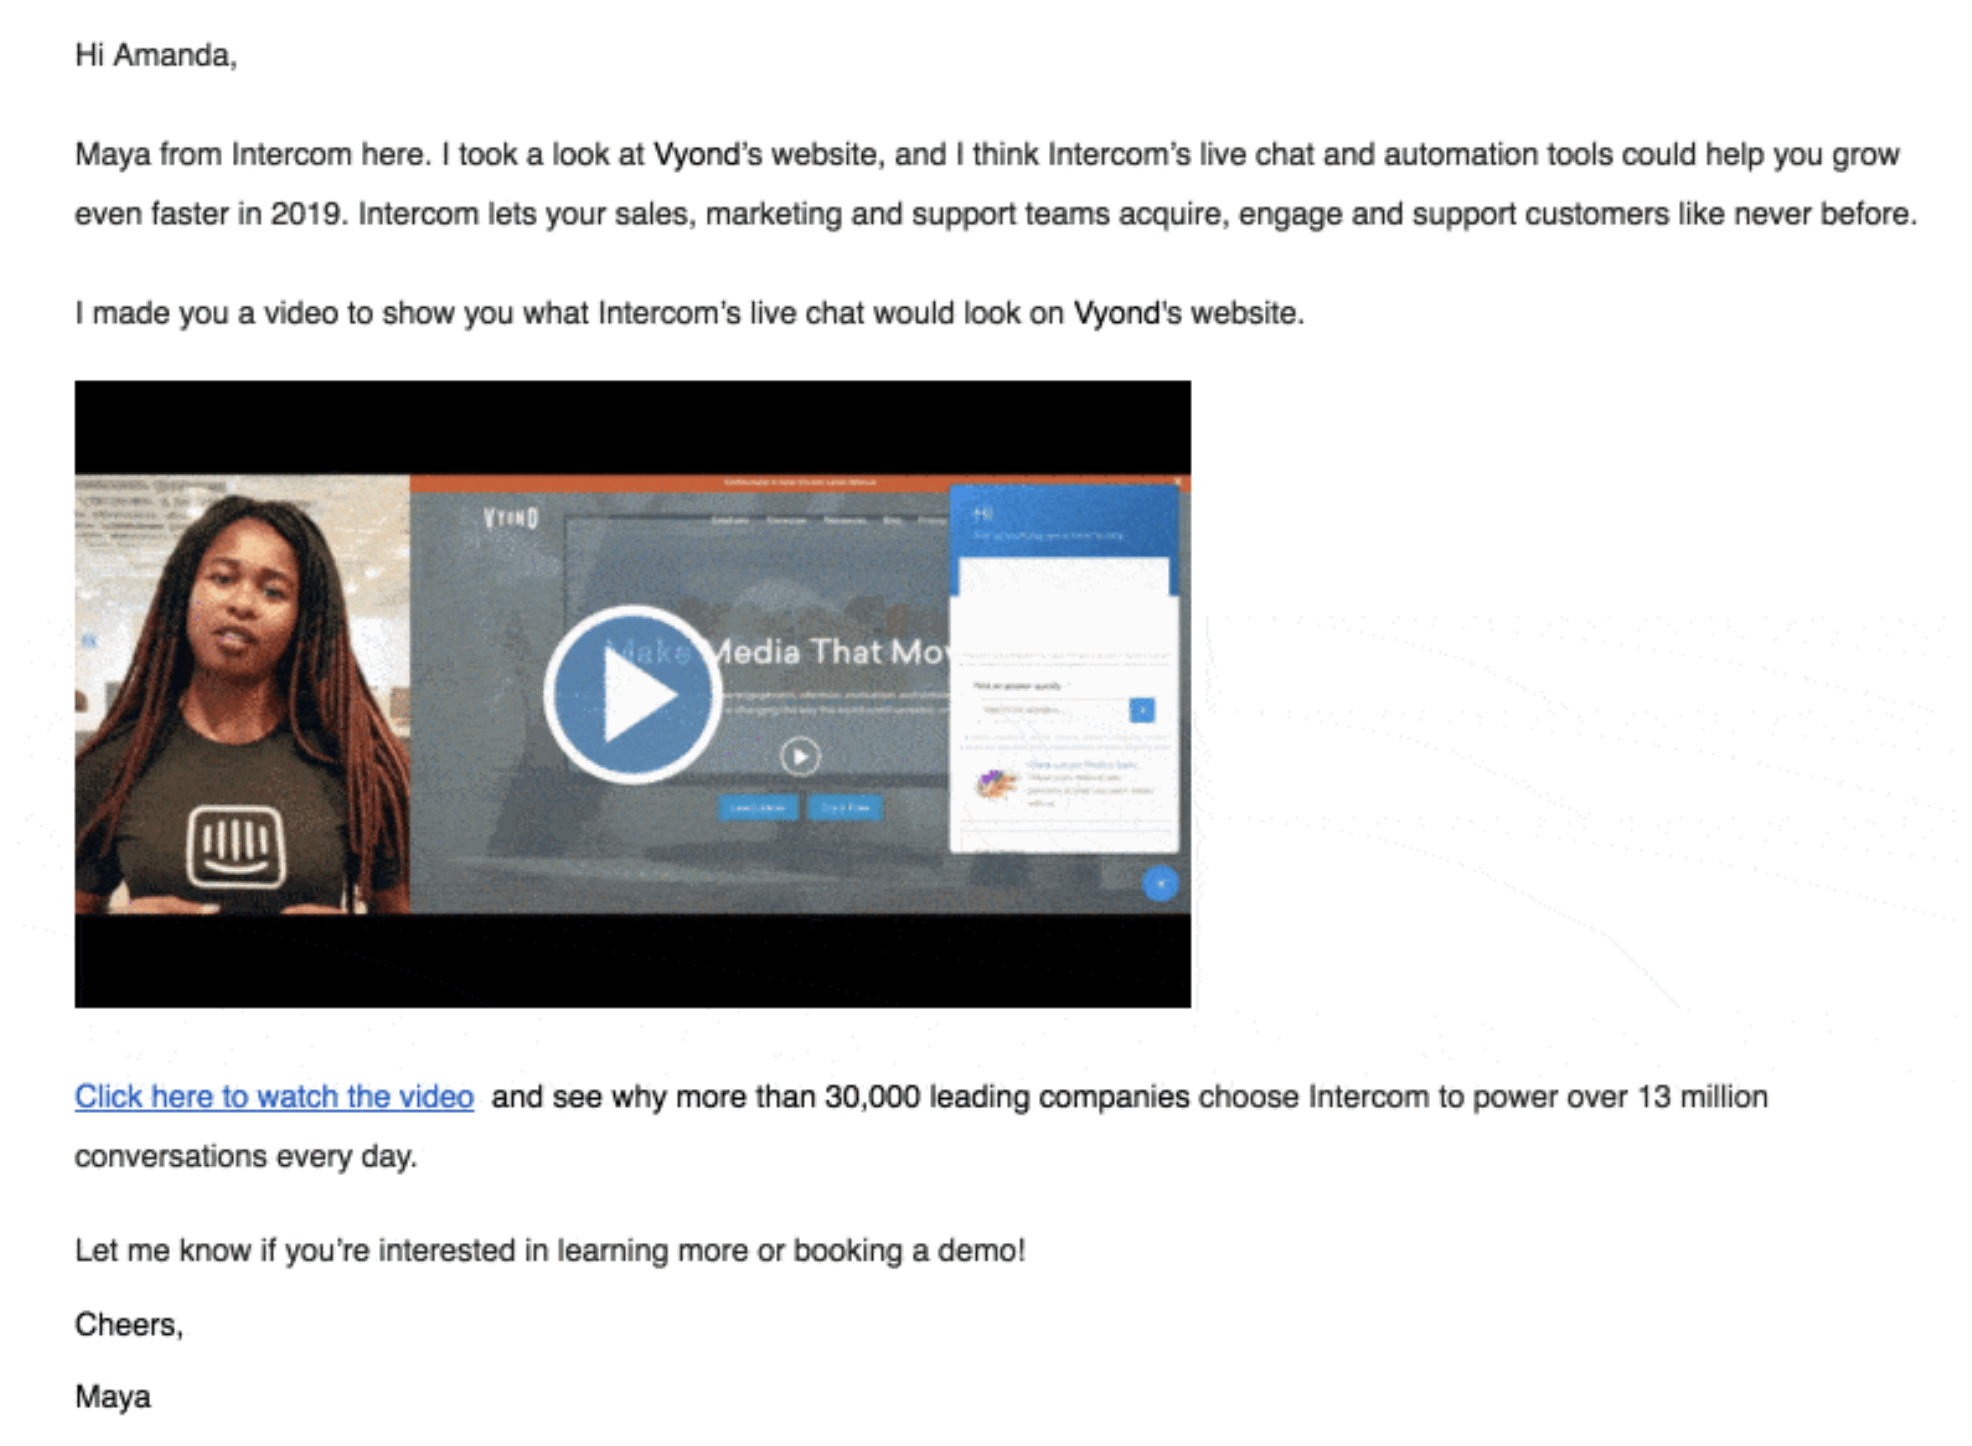 email engagement through video